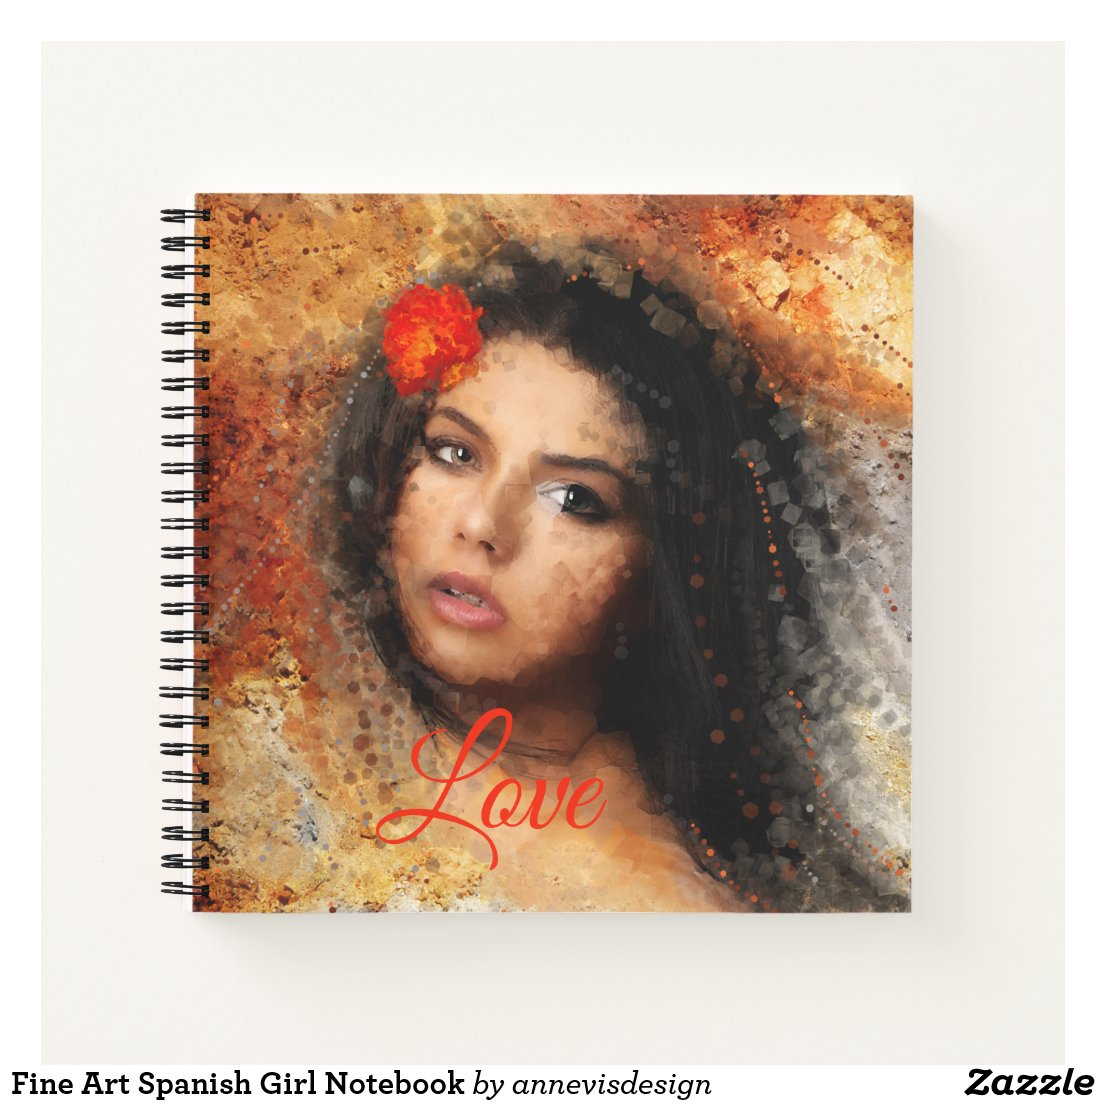 Fine Art Spanish Girl Notebook